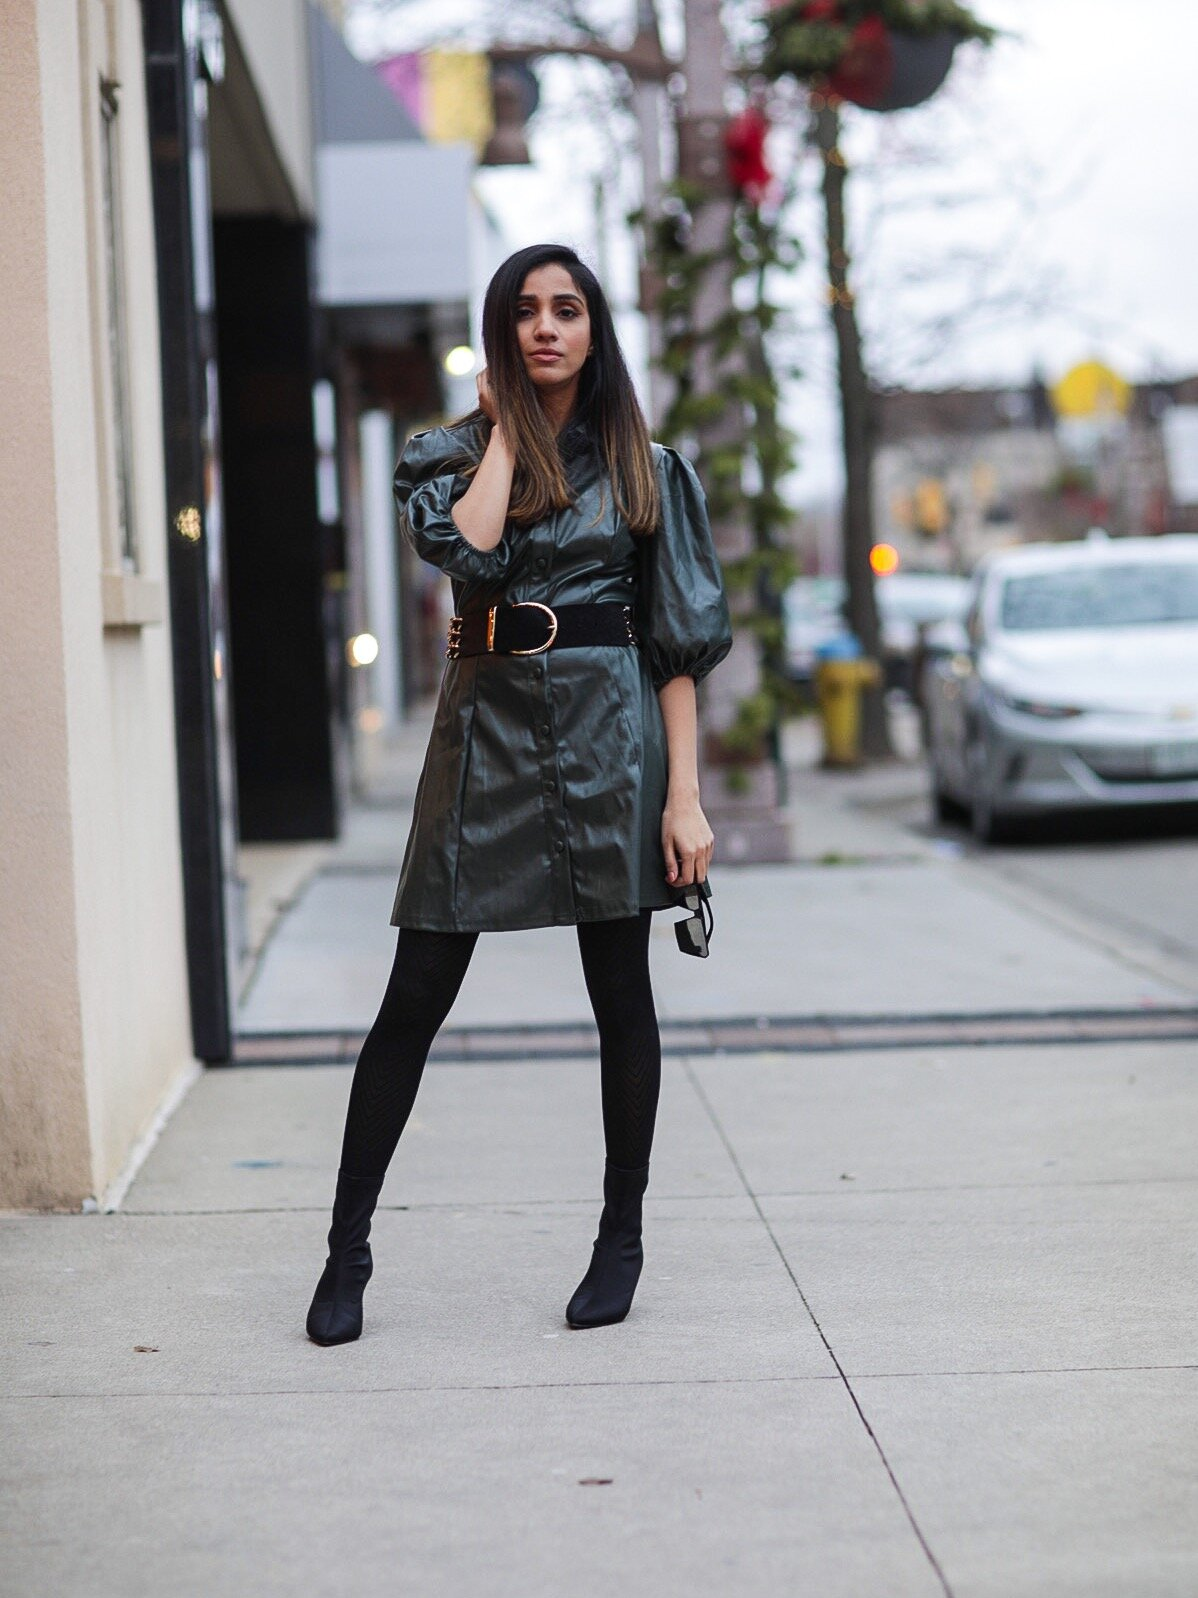 Leather Dress That I Have Been Eyeing On SHEIN X Madelaine Puff Sleeve Button Front PU Dress Faiza Inam Leather dress 2019 trend 22